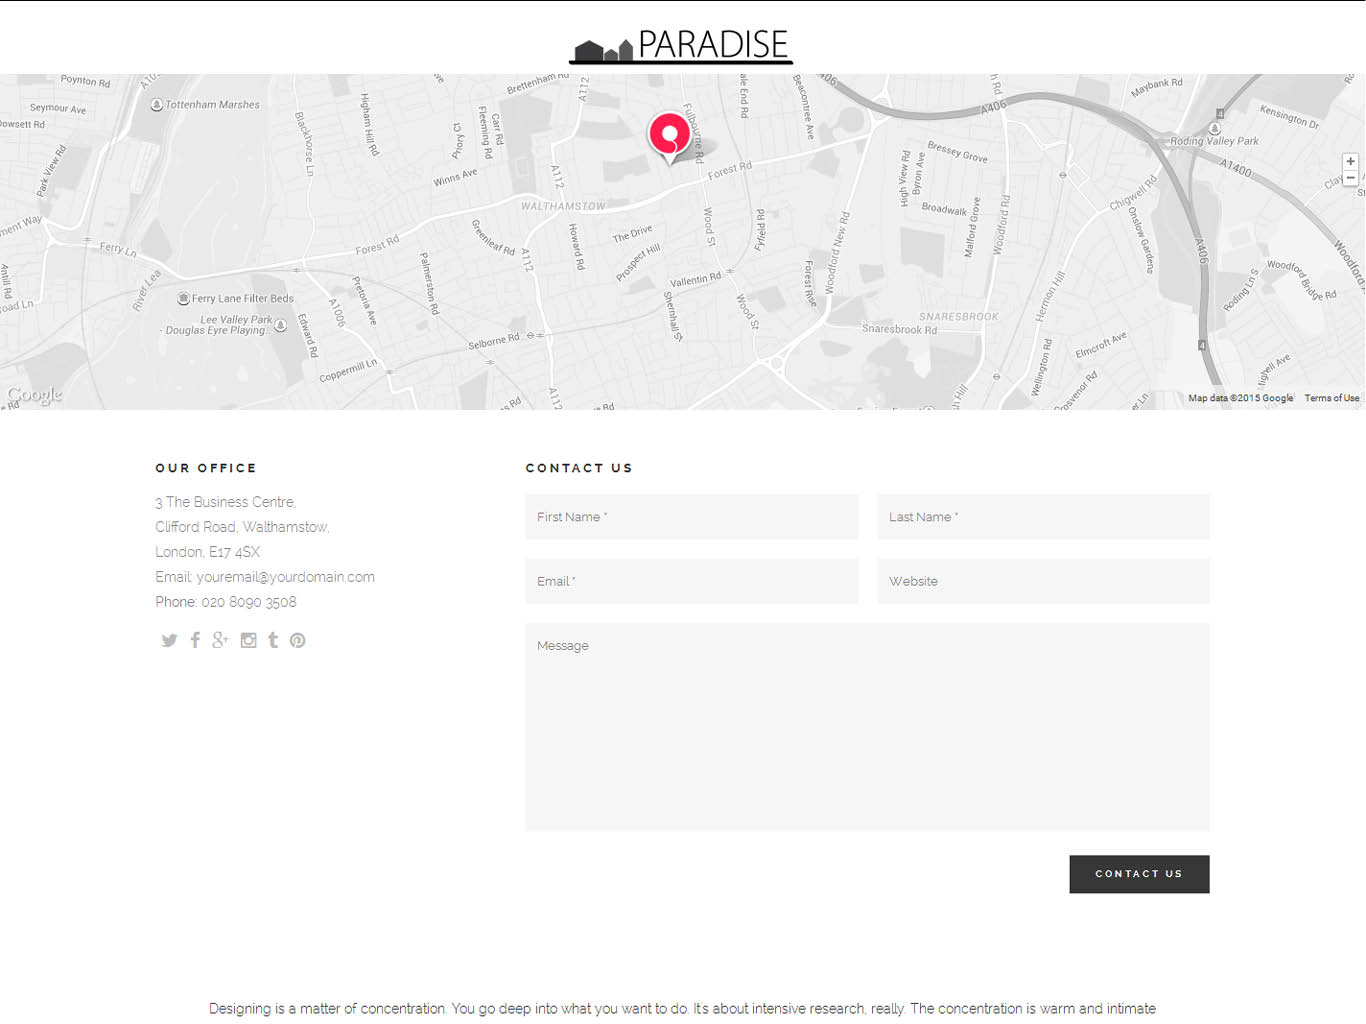 paradise website design-contact